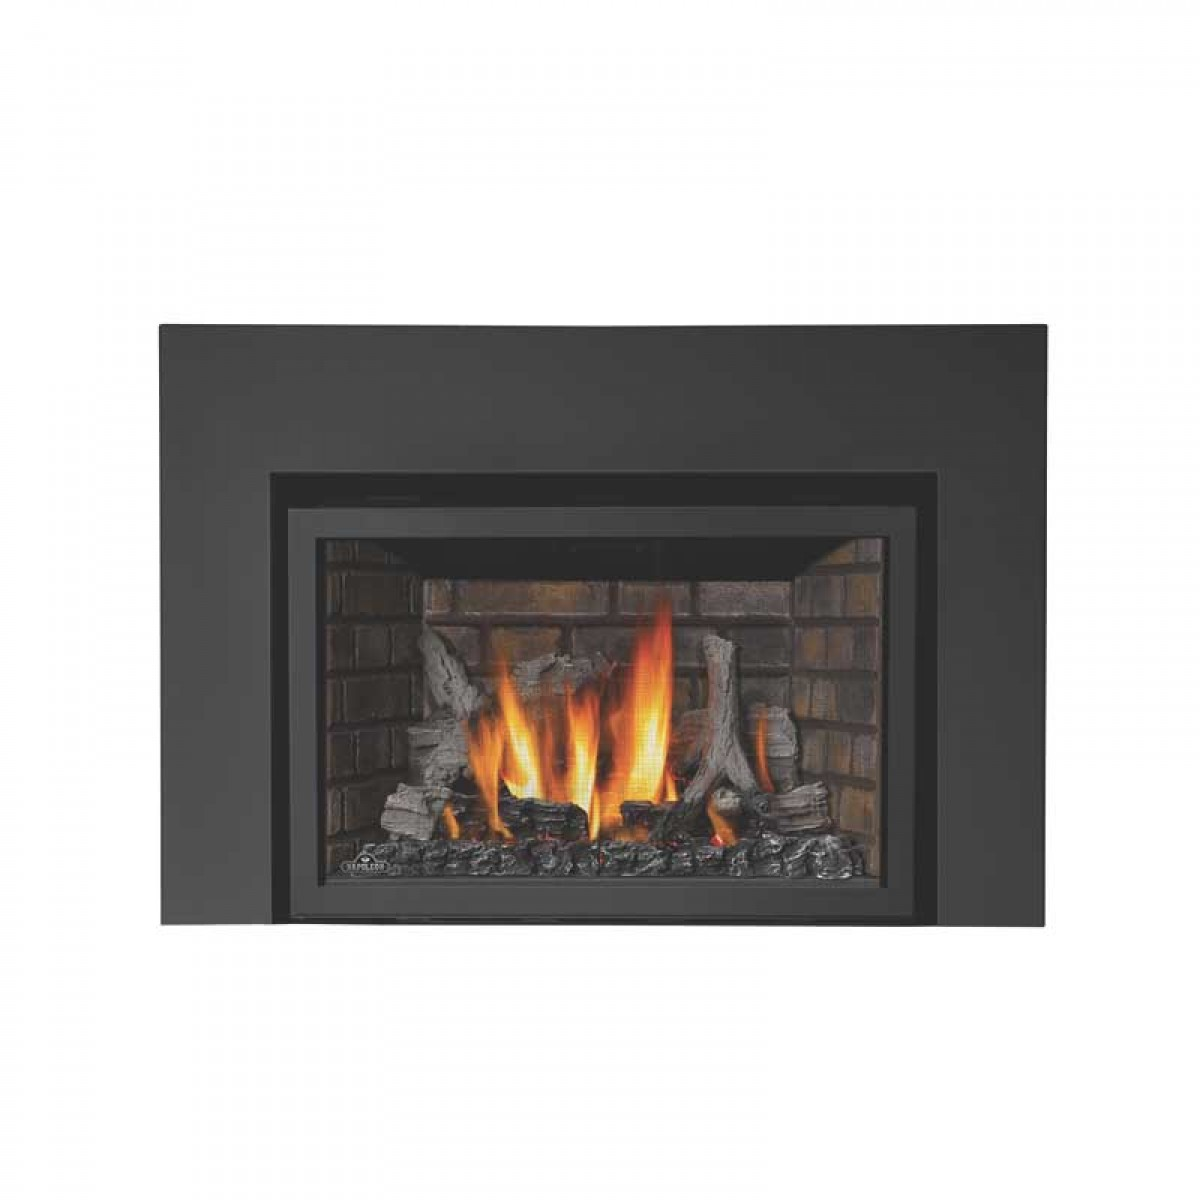 Chimney Free Infrared Fireplace Electric Media Mantel